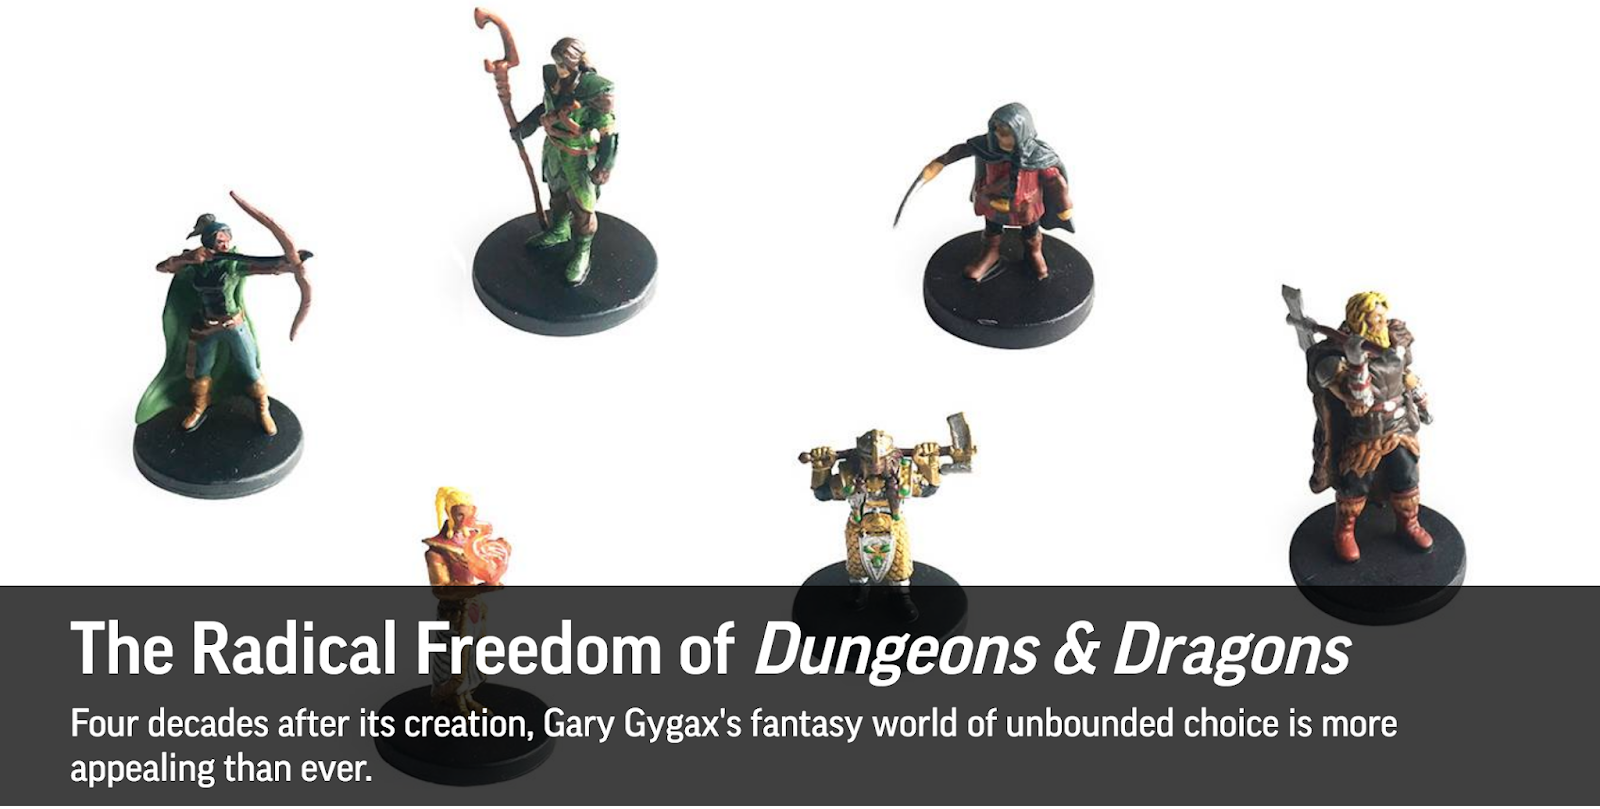 Tenkars tavern 2018 i always enjoy articles that look at the history of dungeons dragons as they come from differing perspectives even the same historical events are seen fandeluxe Gallery